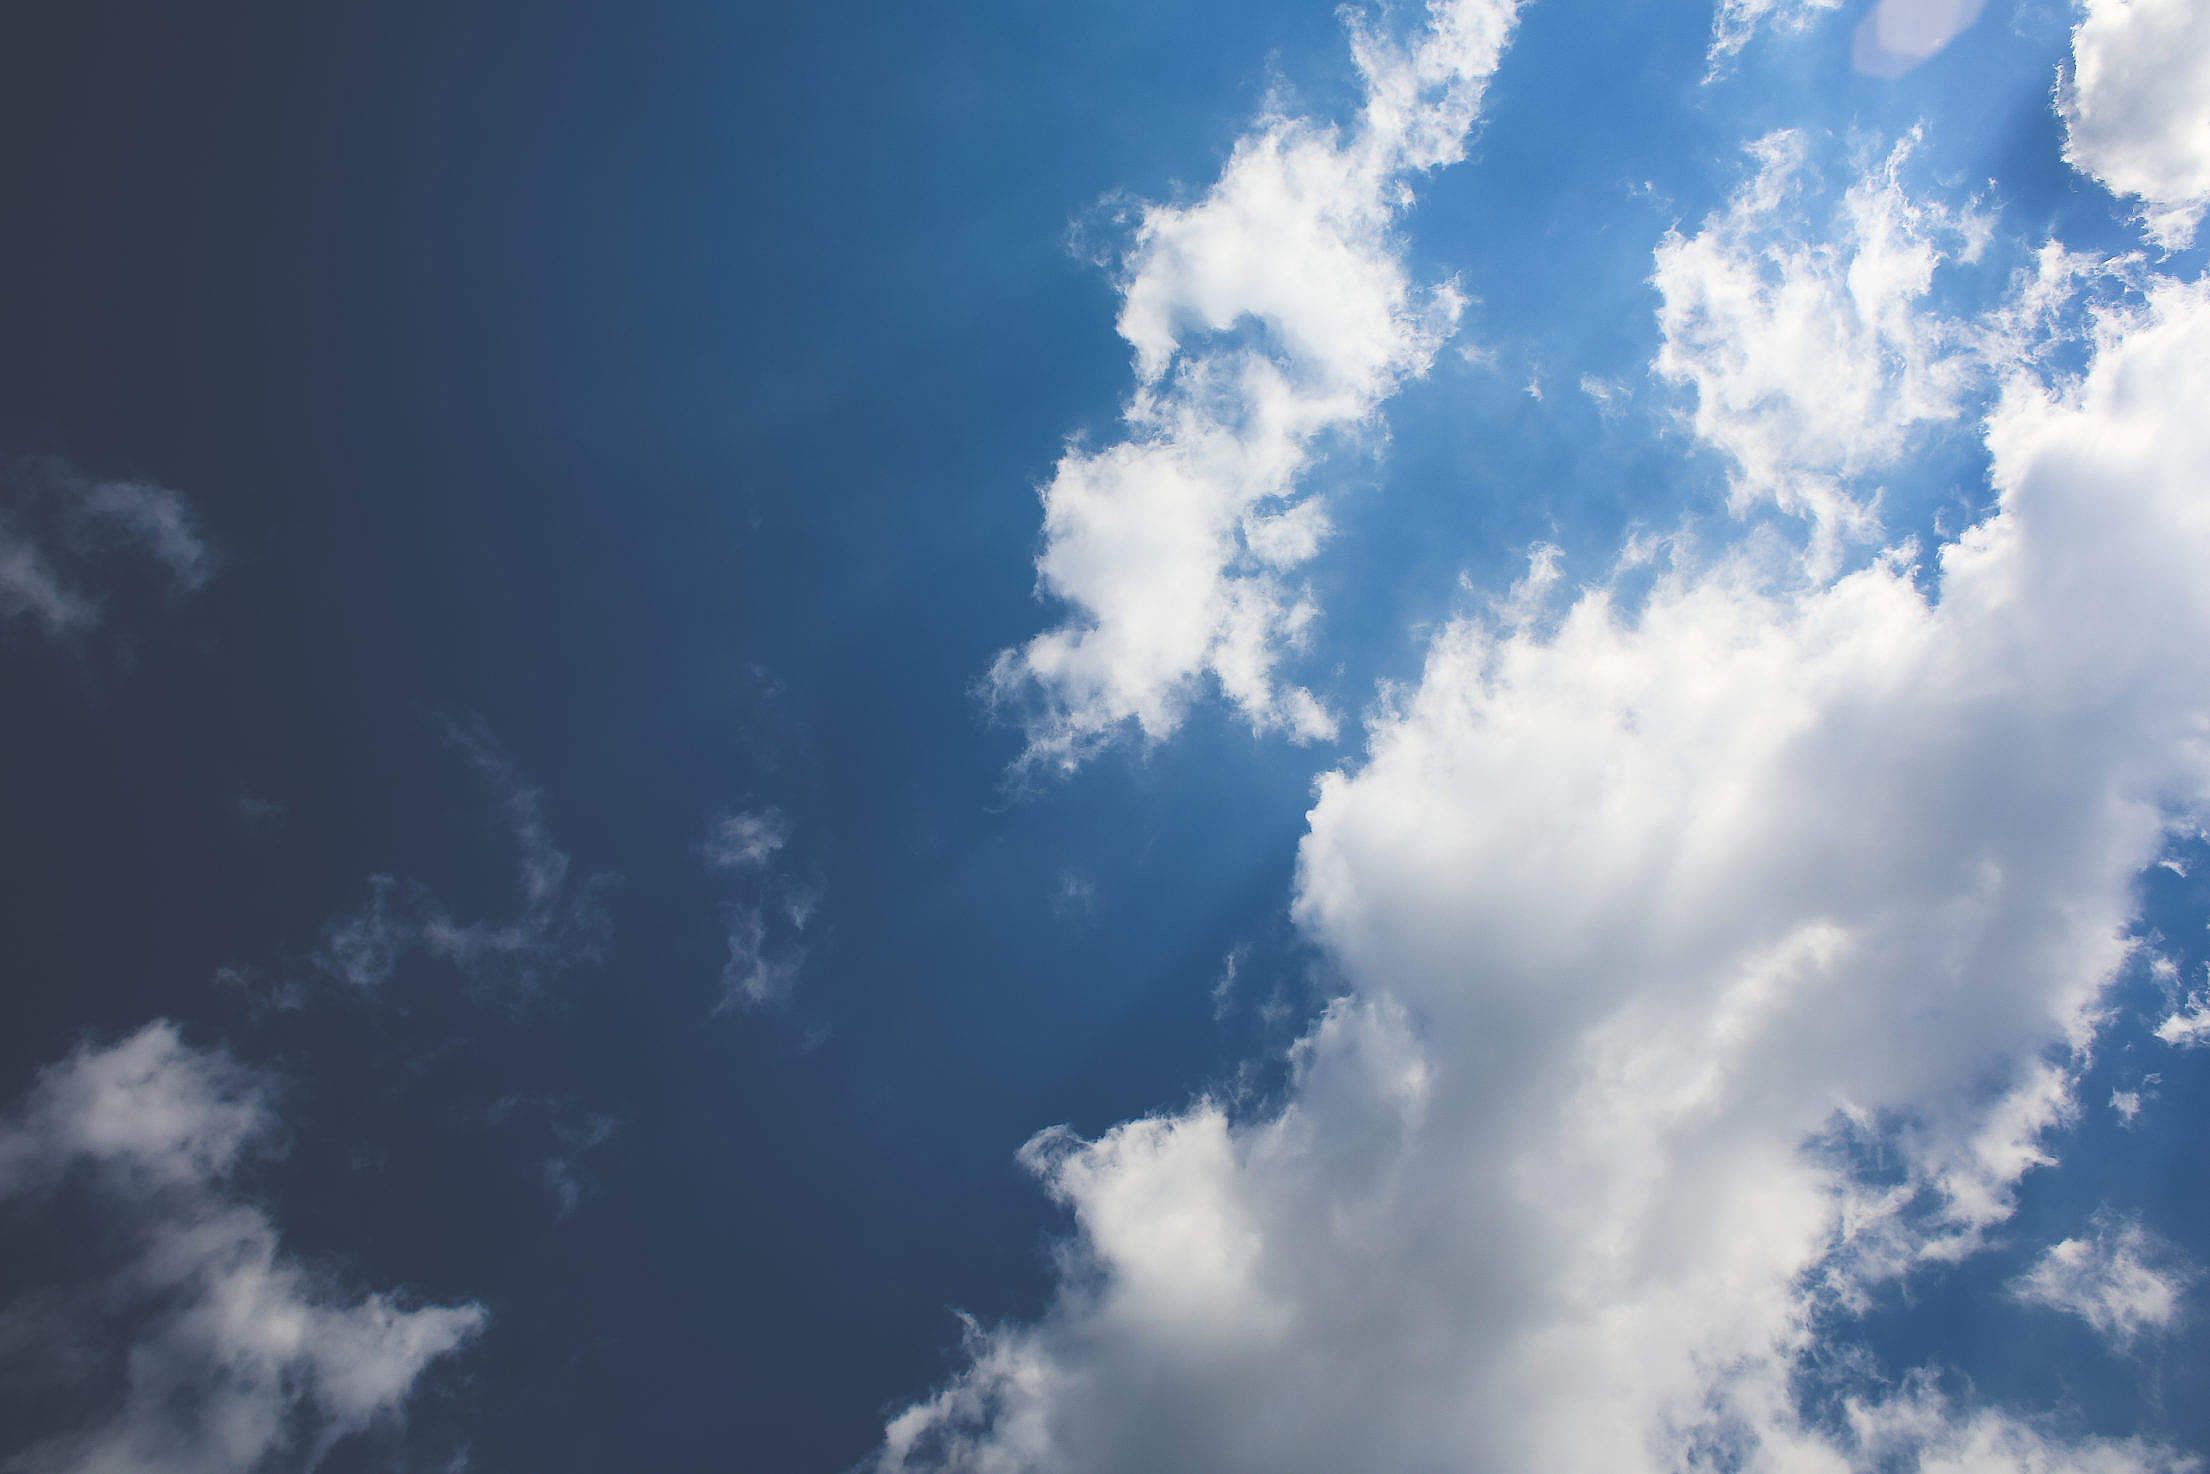 Blue Sky / White Clouds Free Stock Photo